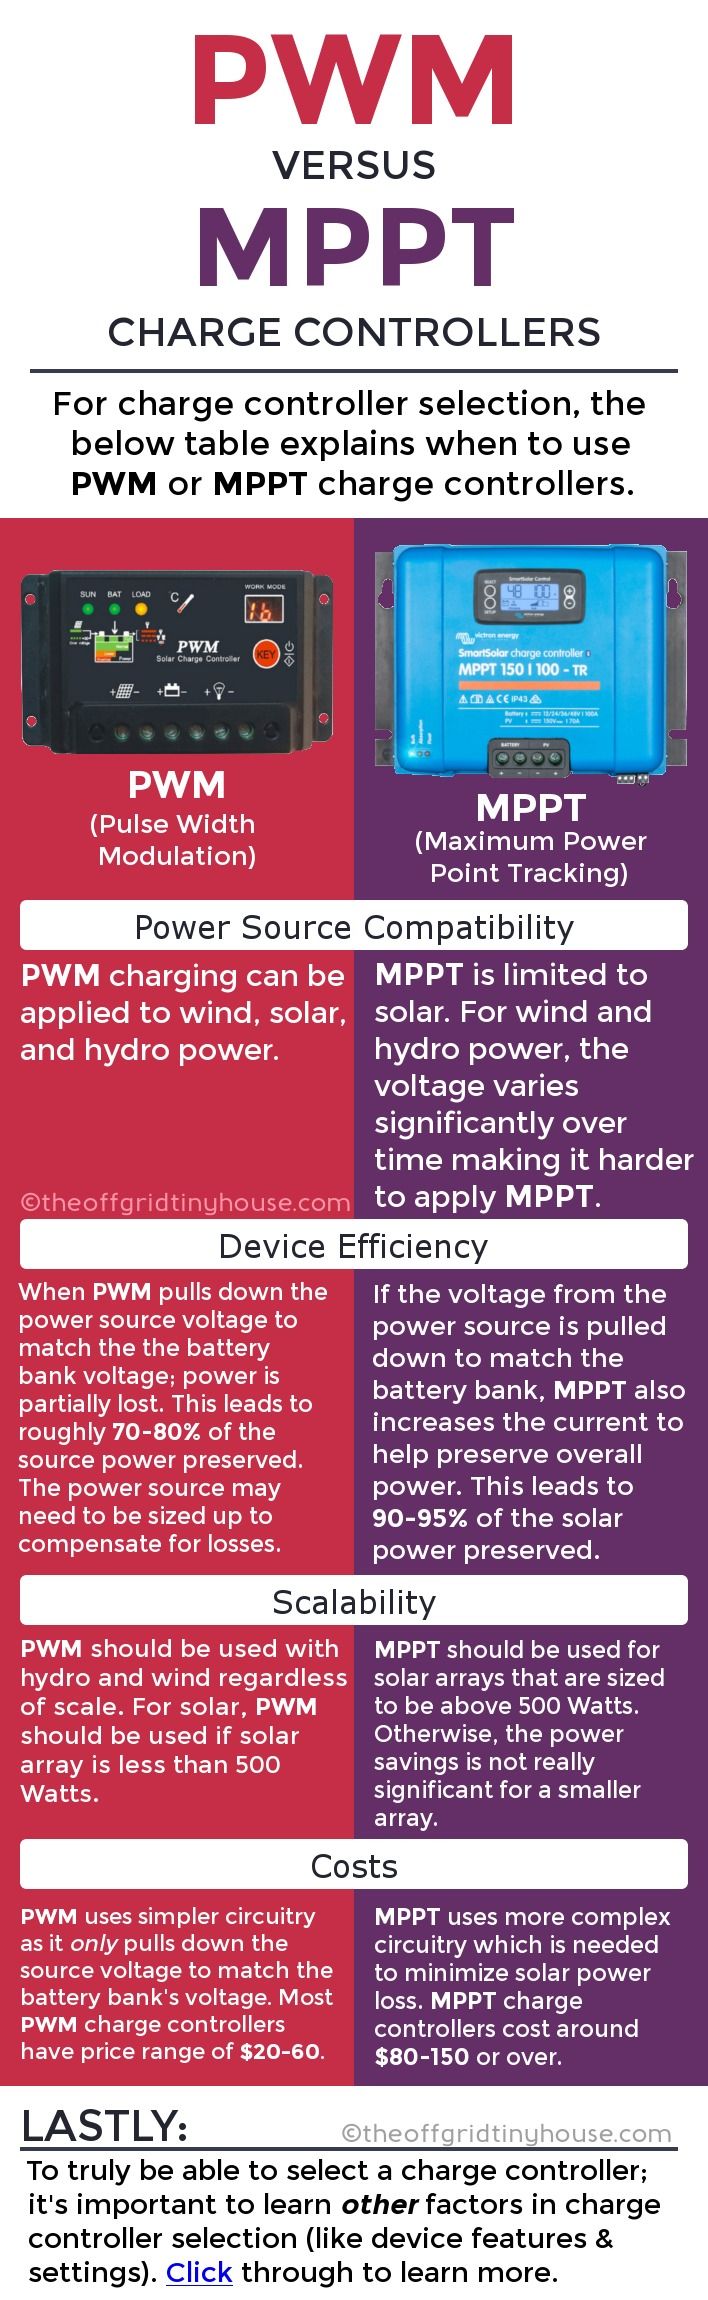 PWM vs MPPT Charge Controllers. #PWM and #MPPT are the two main charging methods used by charge controllers in #offgrid and #renewableenergy systems. The above #infographic shows the differences between #PWM and #MPPT charge controllers and enables one to determine which charging method is best suited for ones needs. However, if you truly want to select a #chargecontroller in real life, click through to learn everything needed to do so.